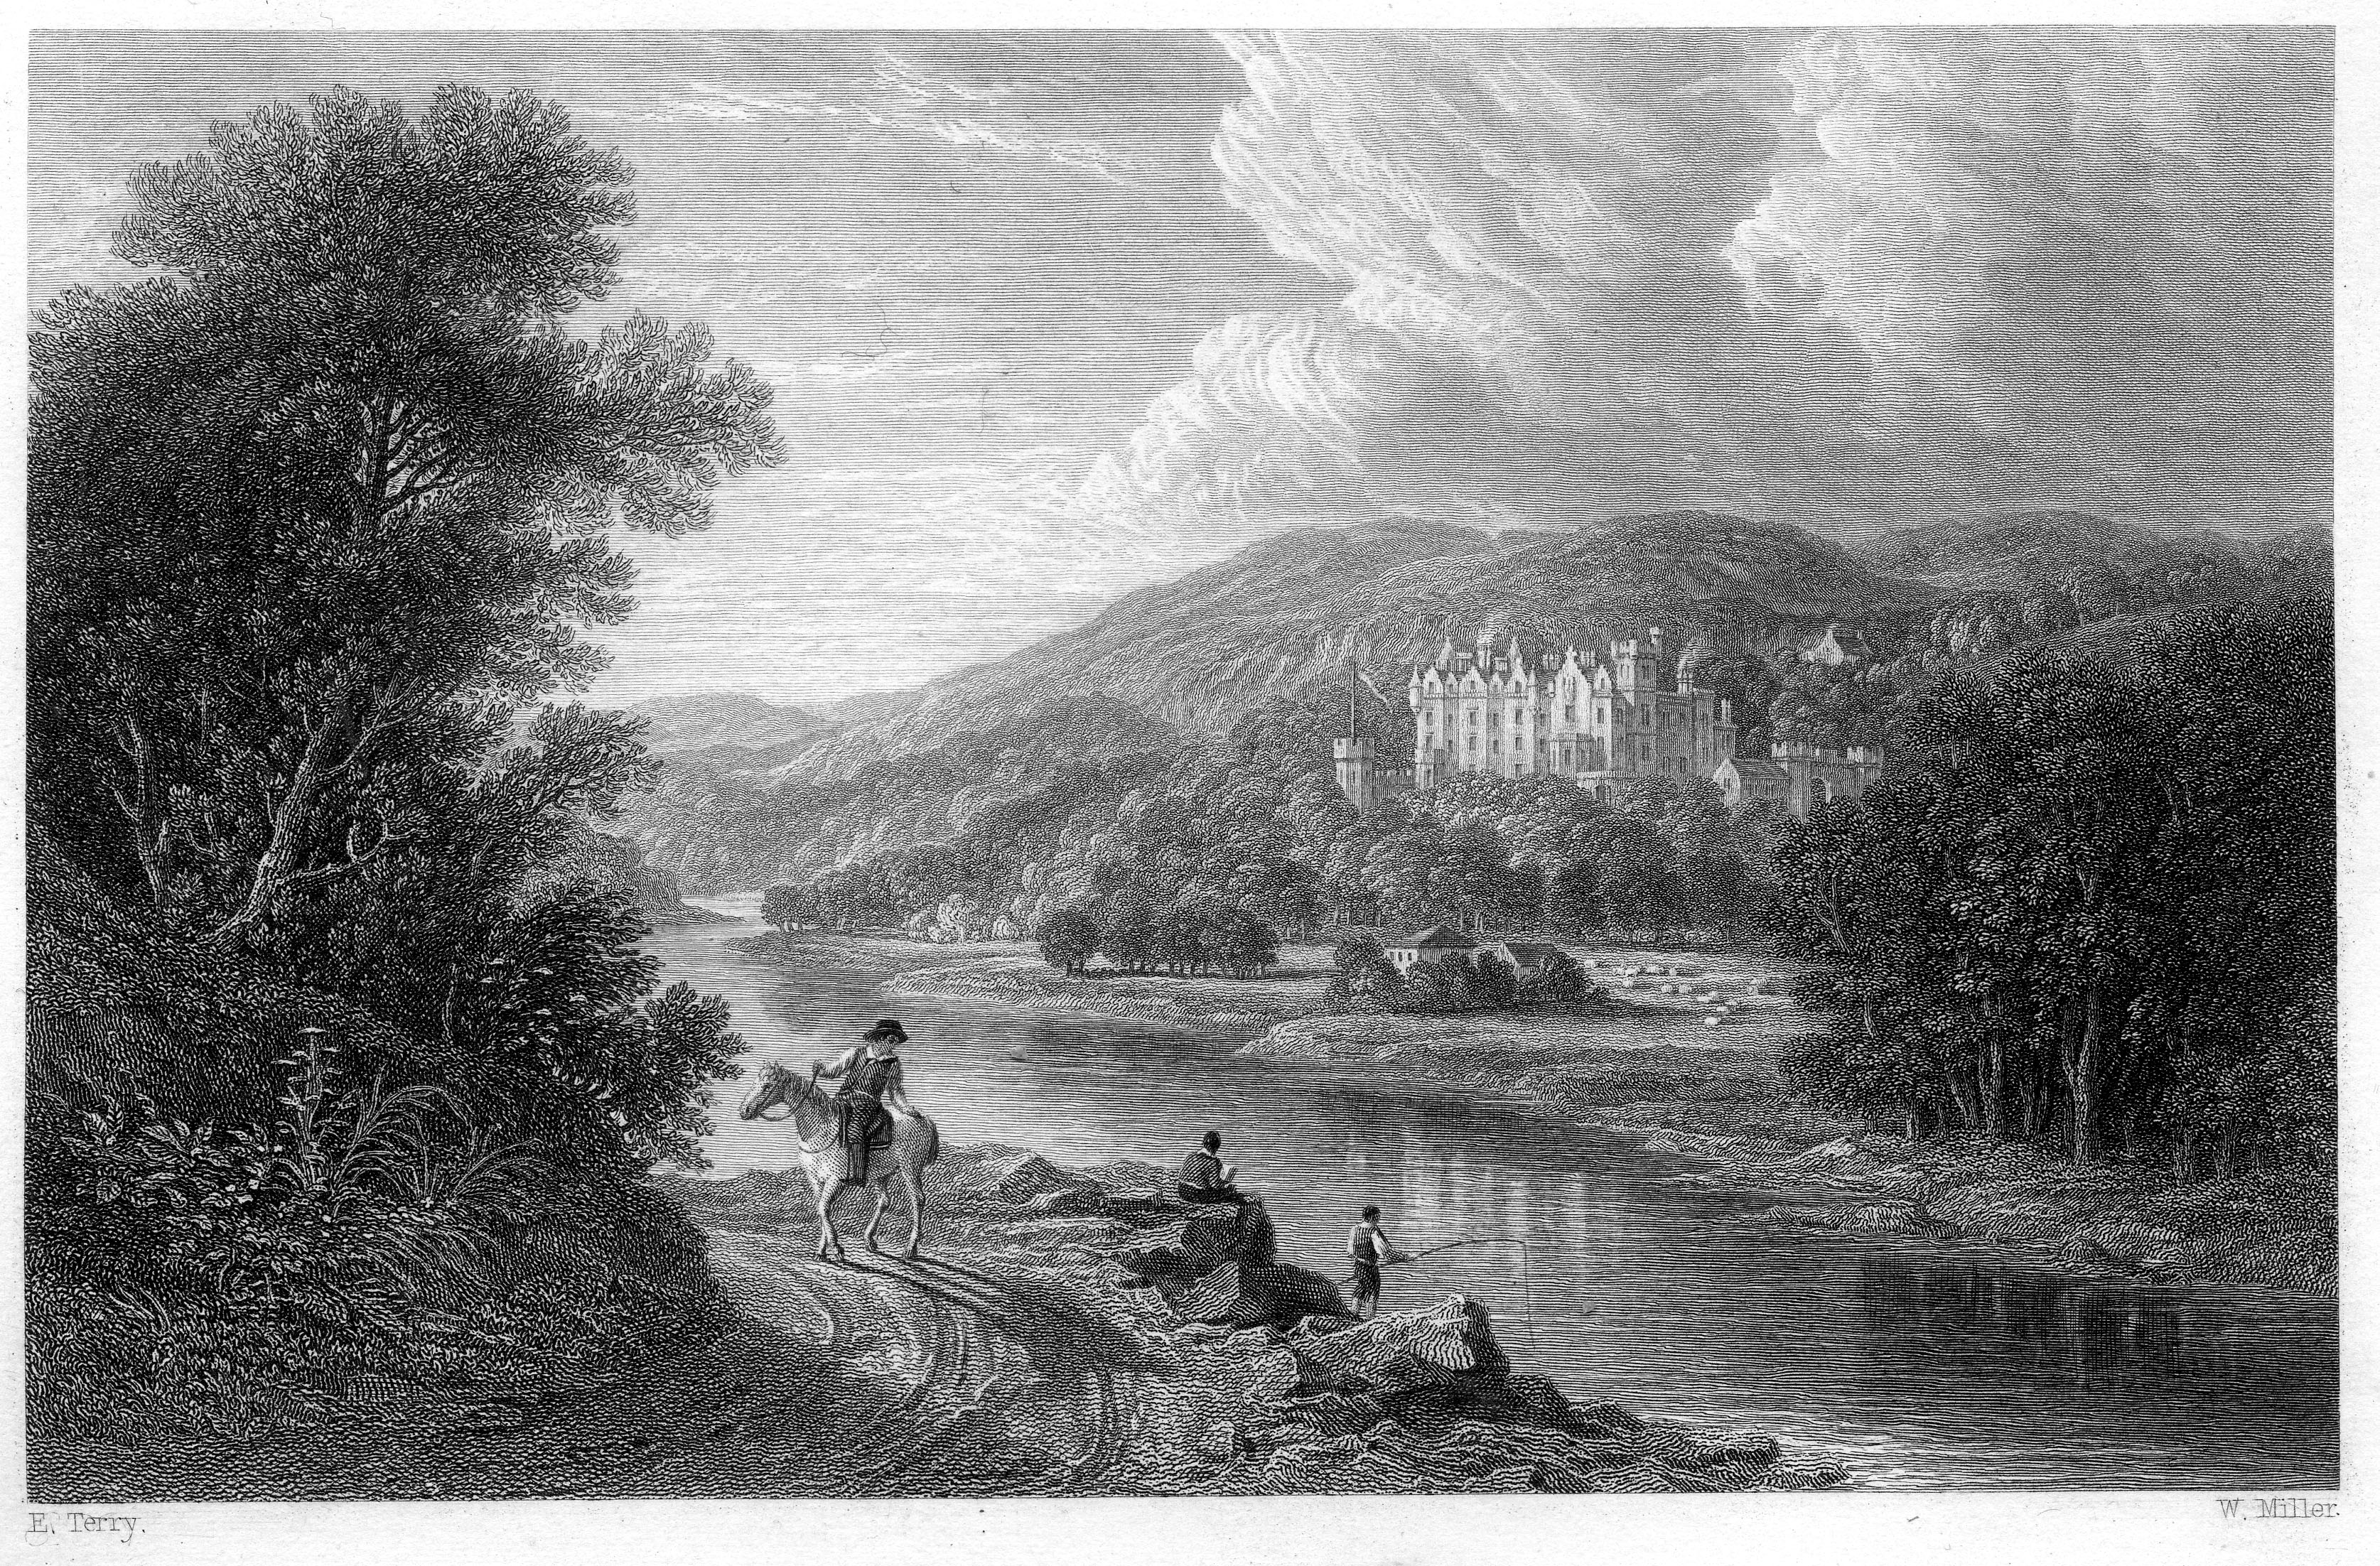 Abbotsford (WI) United States  City pictures : Abbotsford from North bank of Tweed engraving by William Miller ...